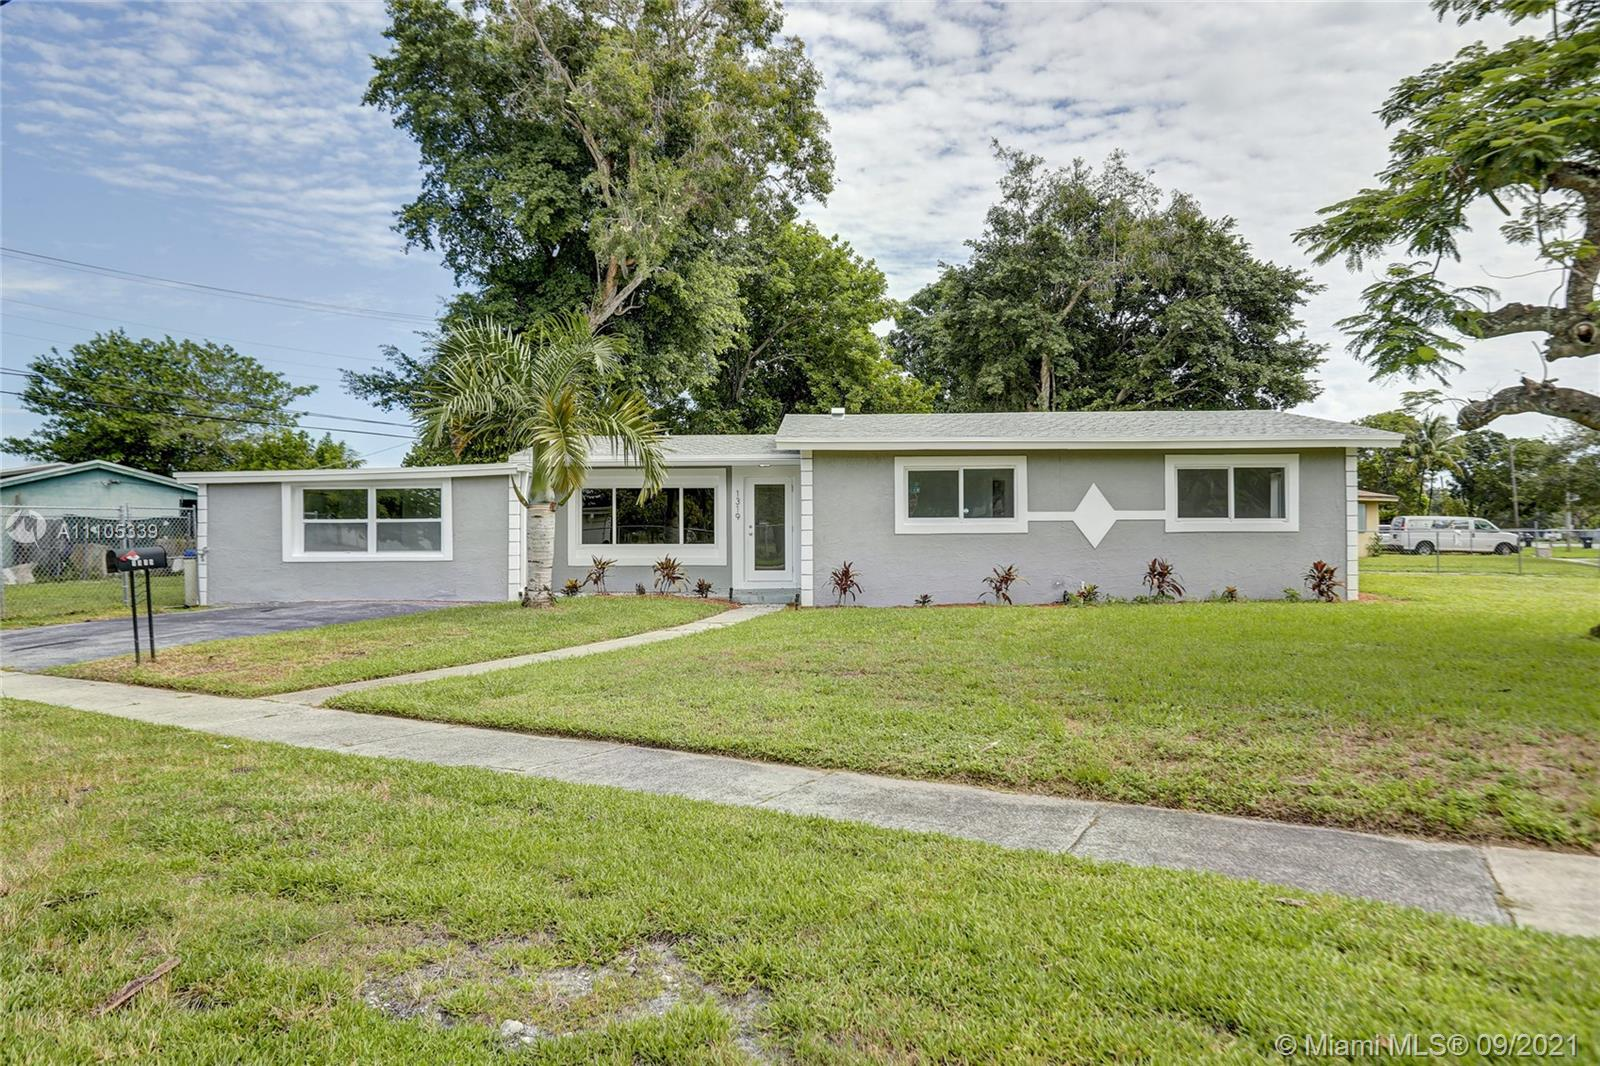 Lauderdale, 1319 NW 14th Ct, Fort Lauderdale, Florida 33311